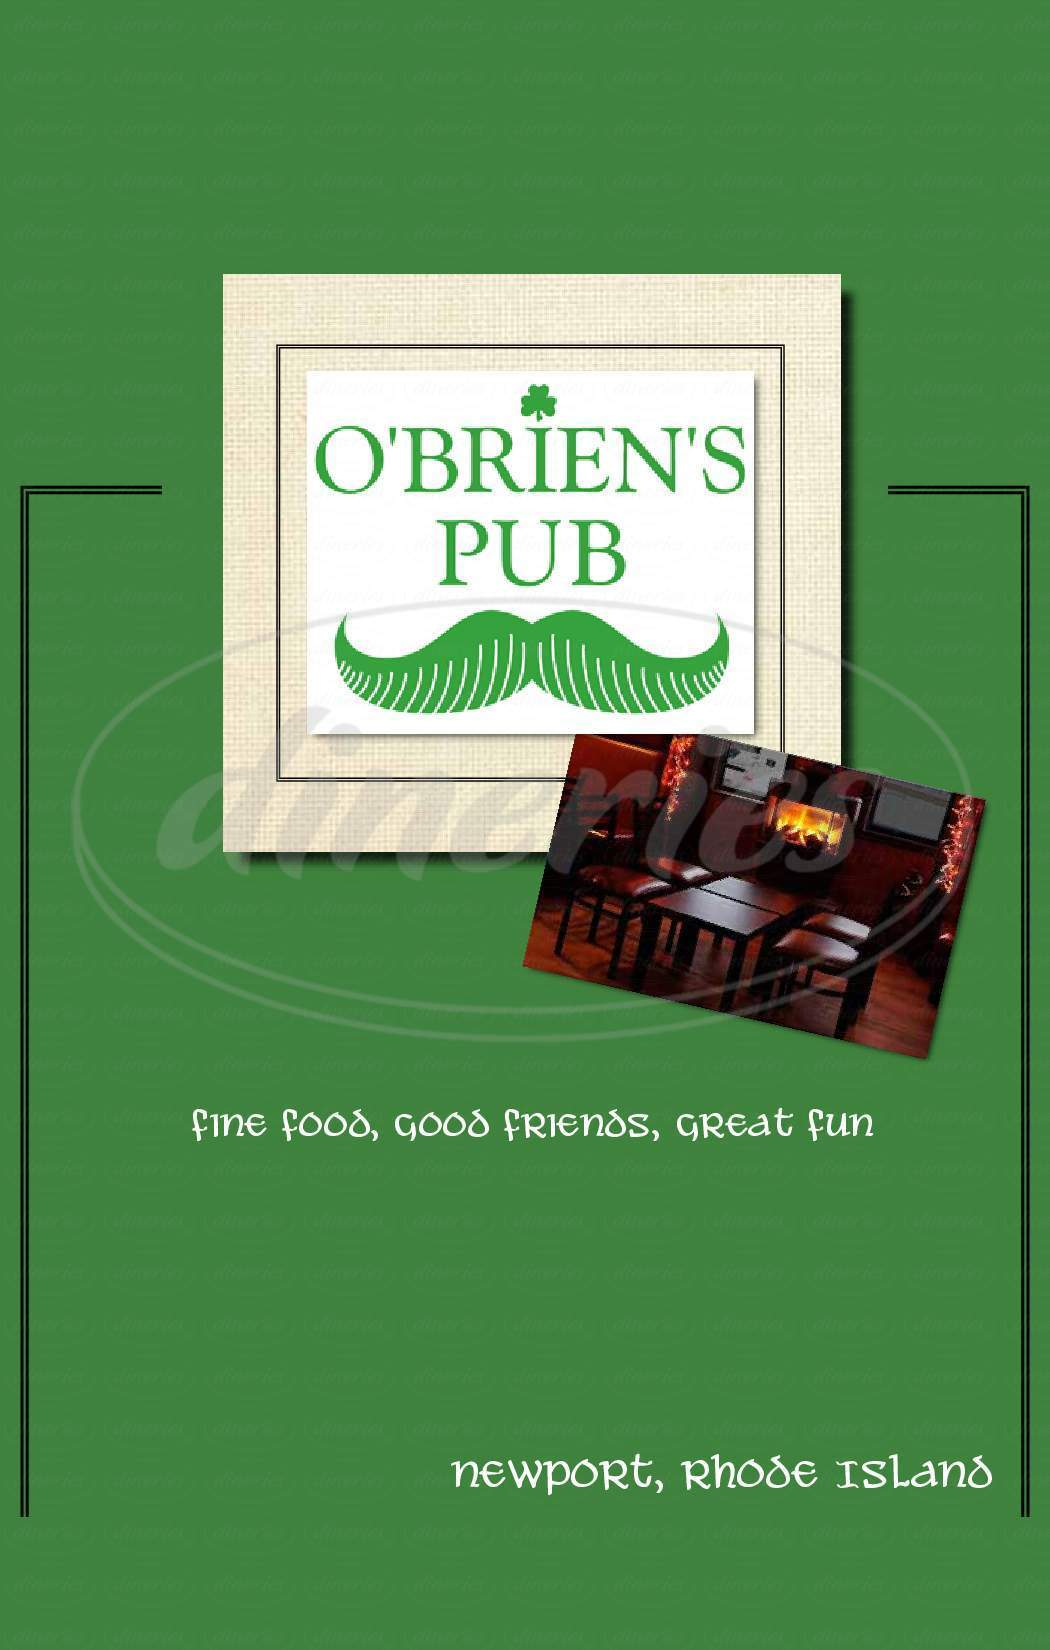 menu for O'Brien's Pub